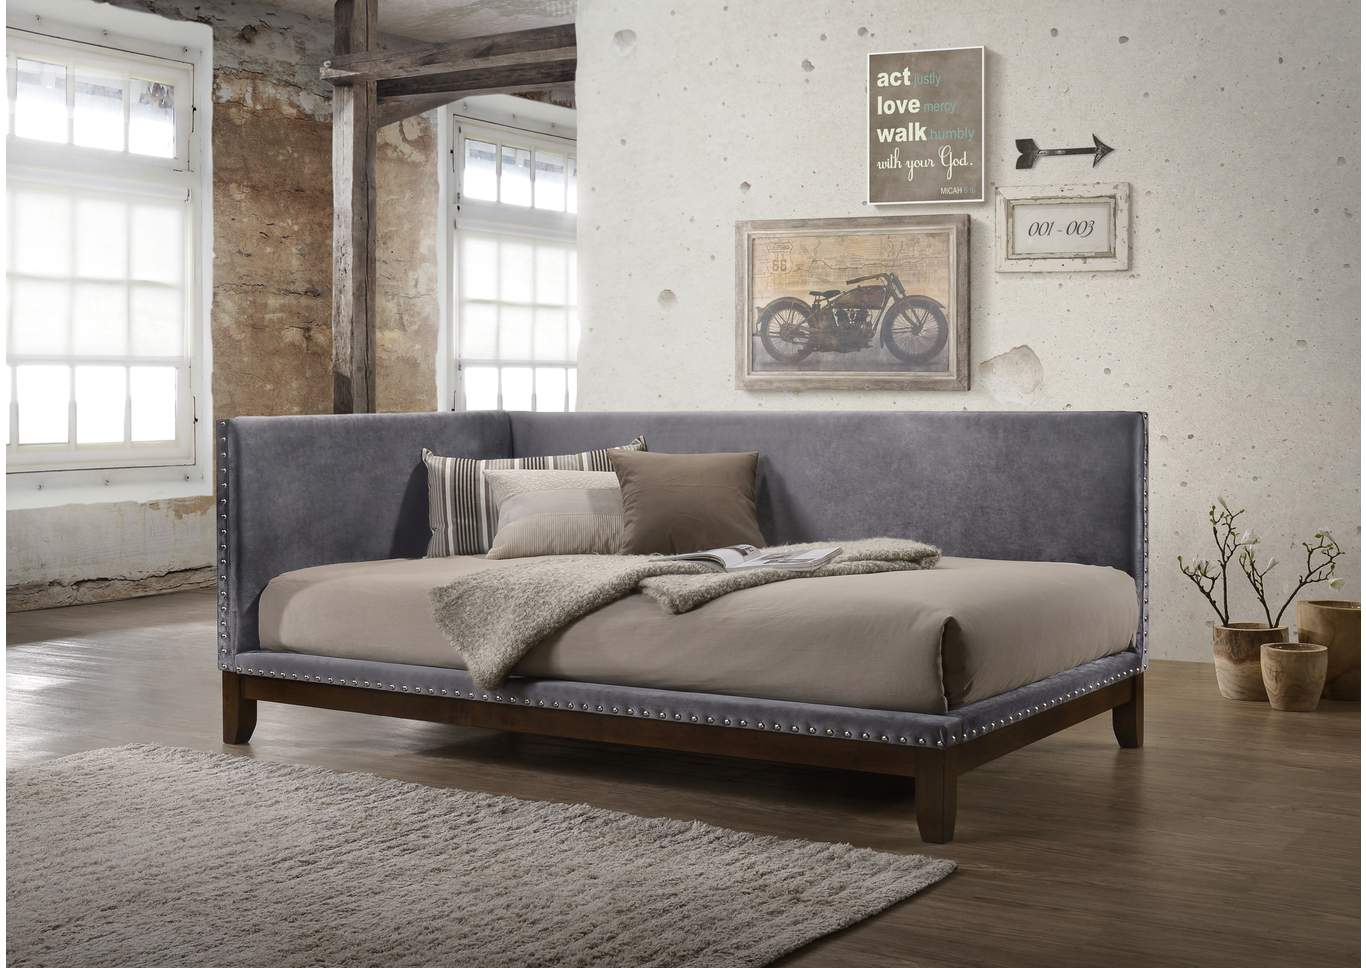 Pax Grey Upholstered Daybed,Crown Mark